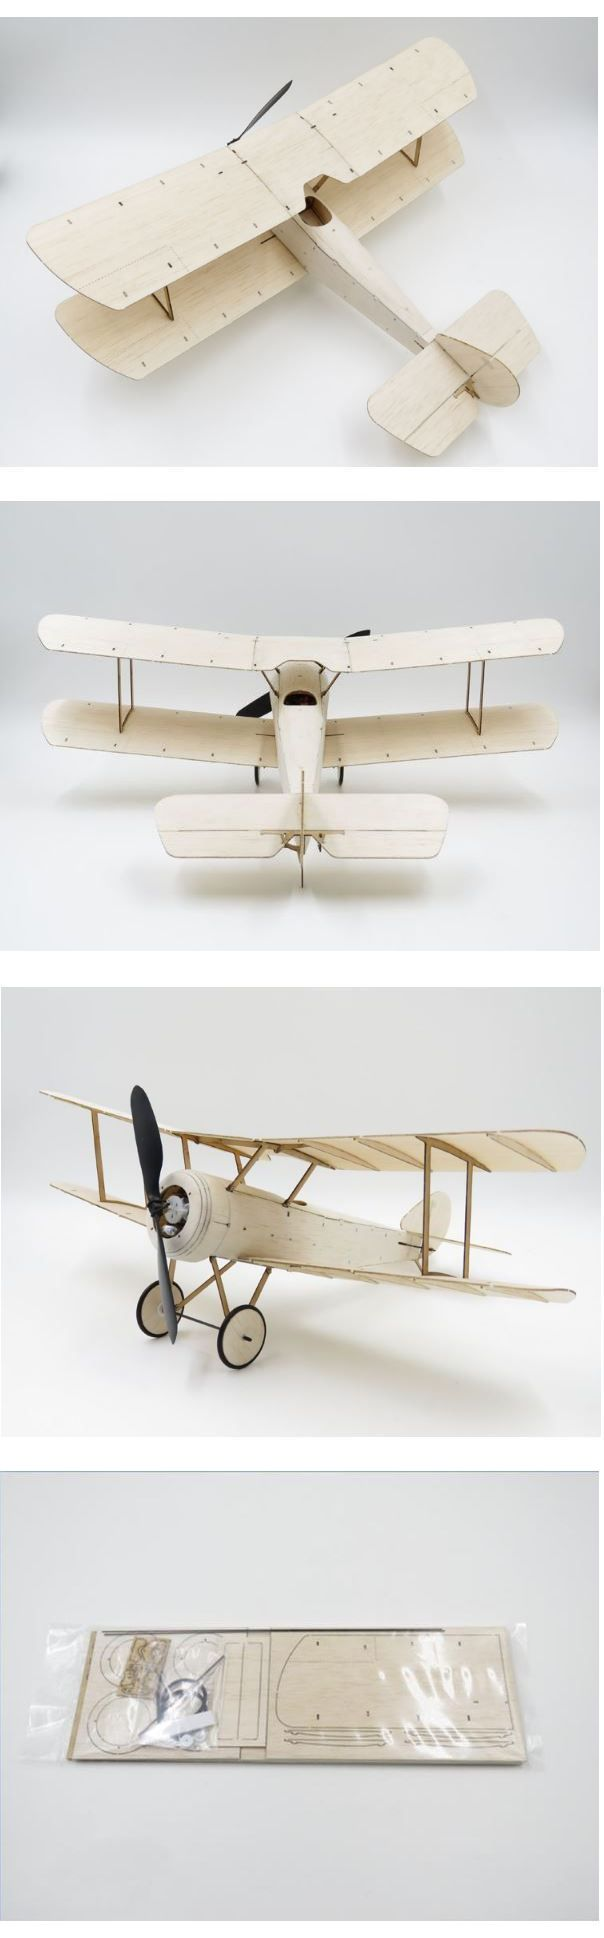 Airplanes 182182: Usa Sopwith Pup Balsa Wood 378Mm Wingspan Biplane Warbird Aircraft Rc Plane Kit -> BUY IT NOW ONLY: $89.99 on eBay!